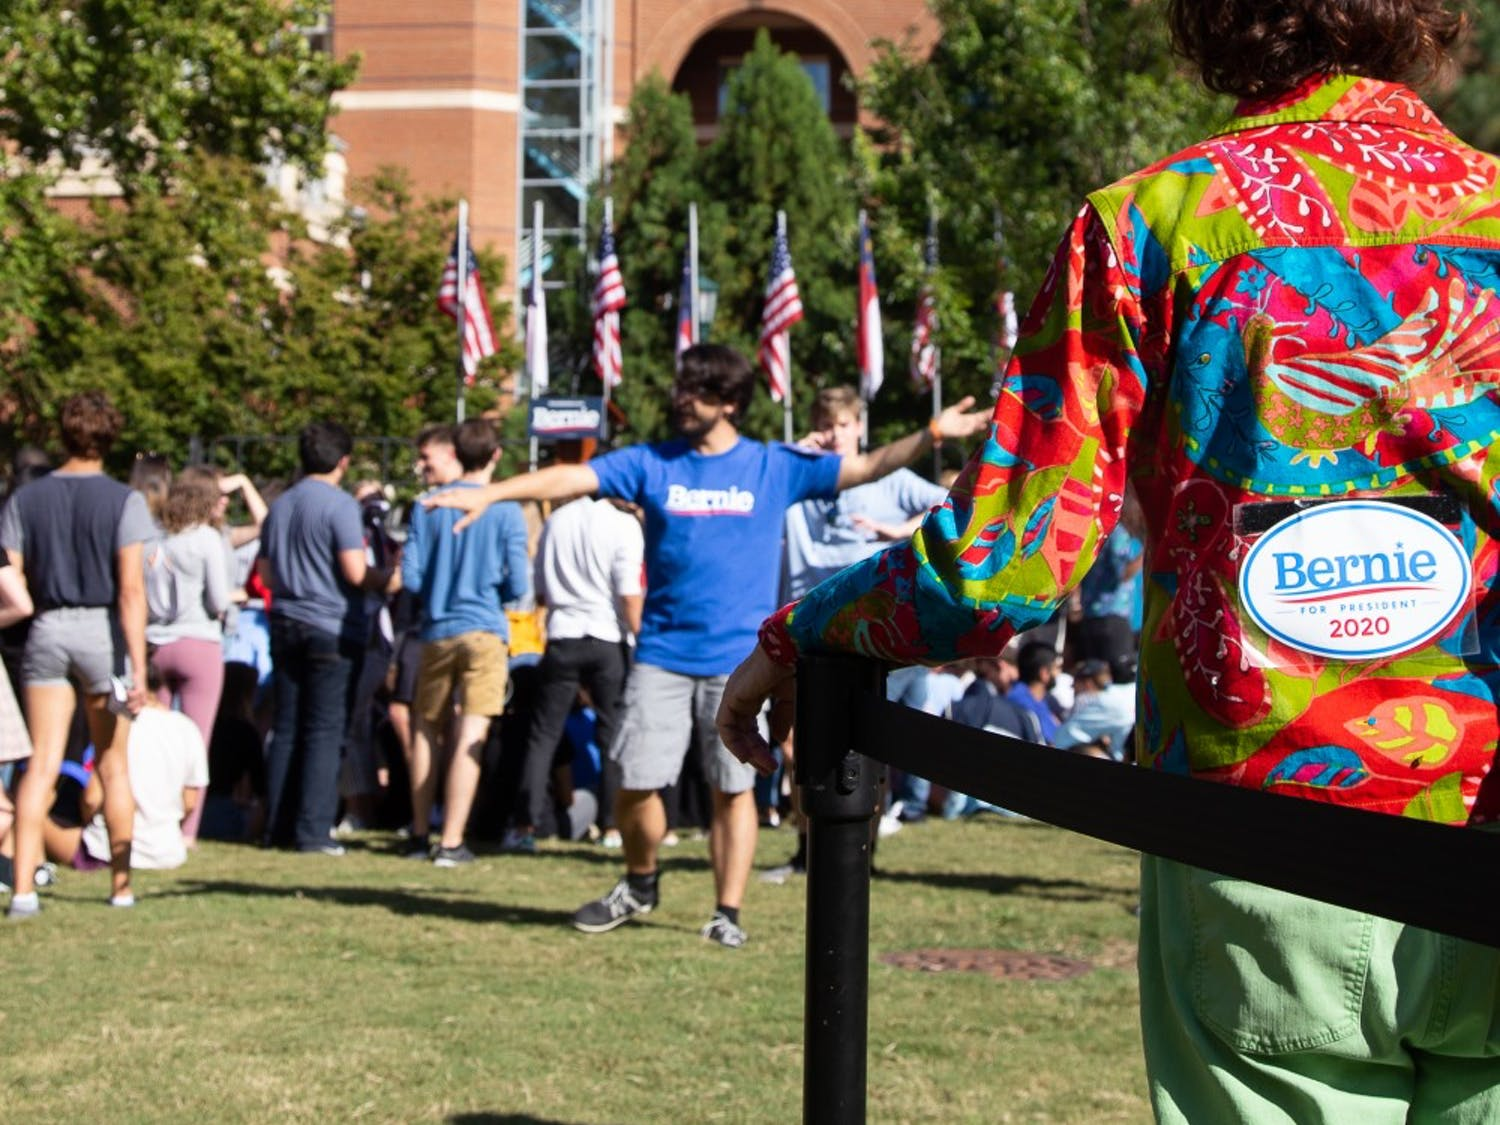 Volunteers help organize and facilitate Senator Bernie Sanders' visit to campus on September 19, 2019. Senator Sanders is promoting his second campaign to be the democratic candidate for the Presidential Election.